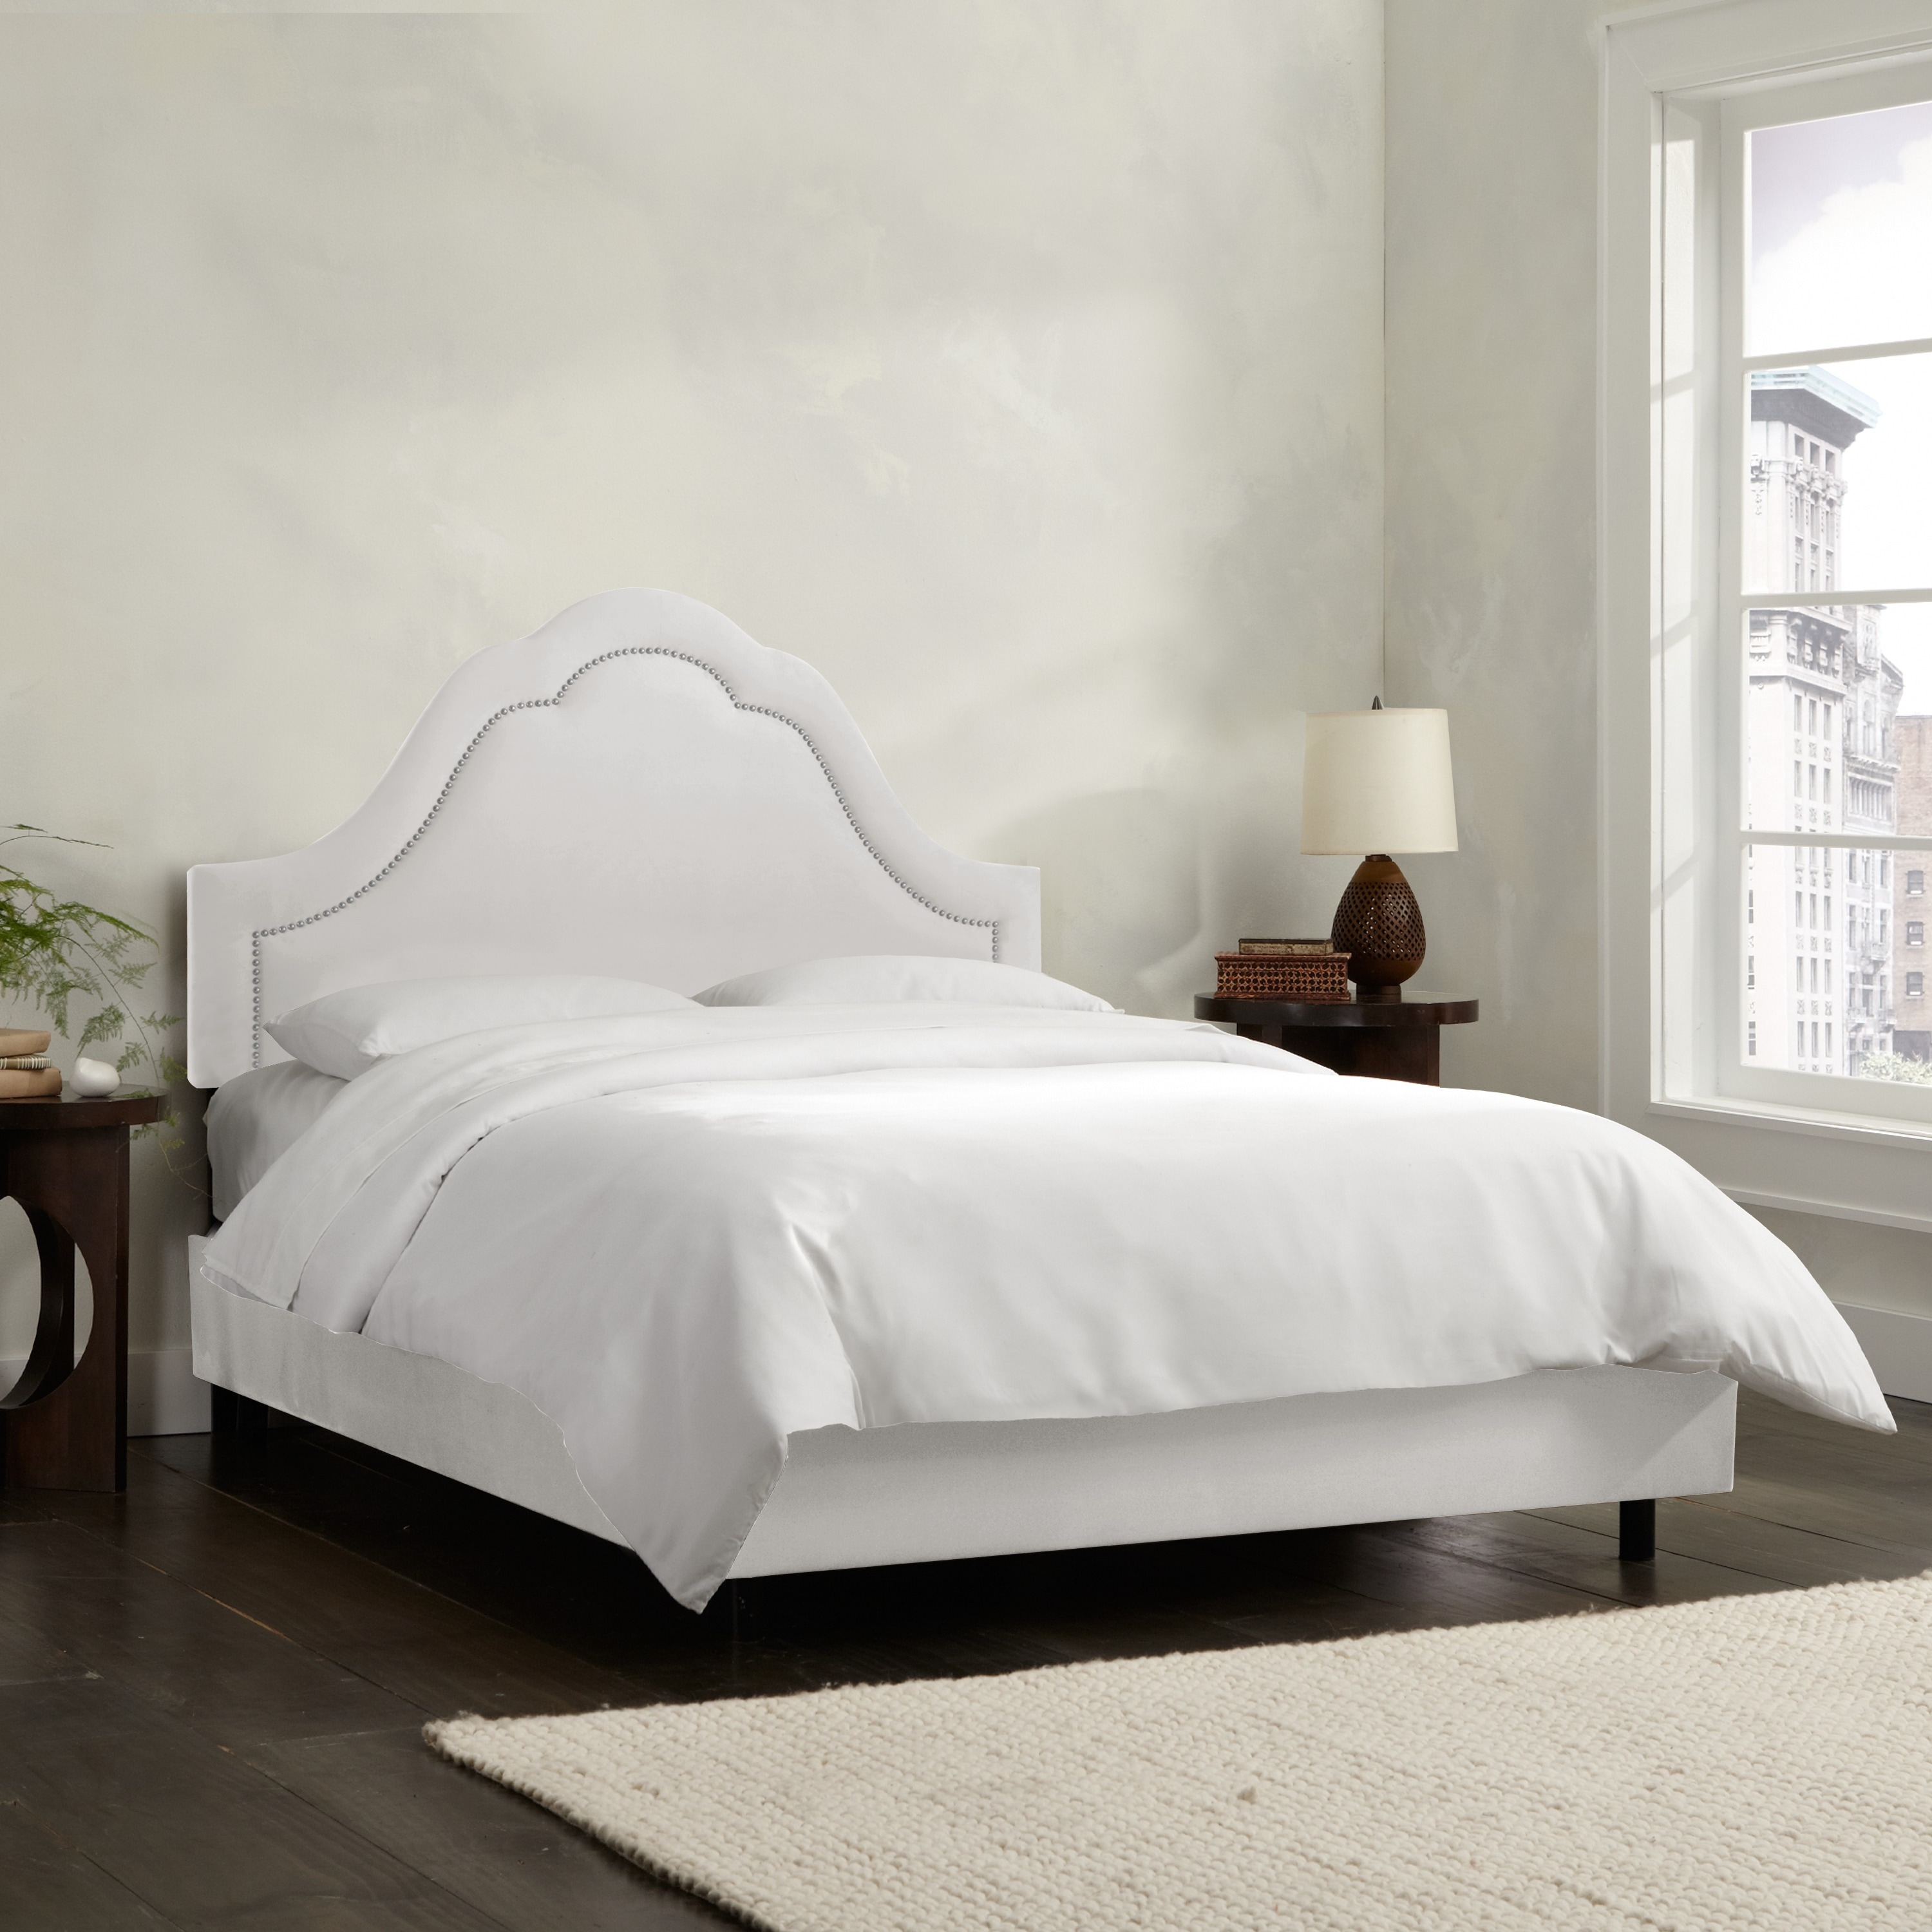 Shop skyline furniture arch inset nail button bed in micro suede white free shipping today overstock com 9140586